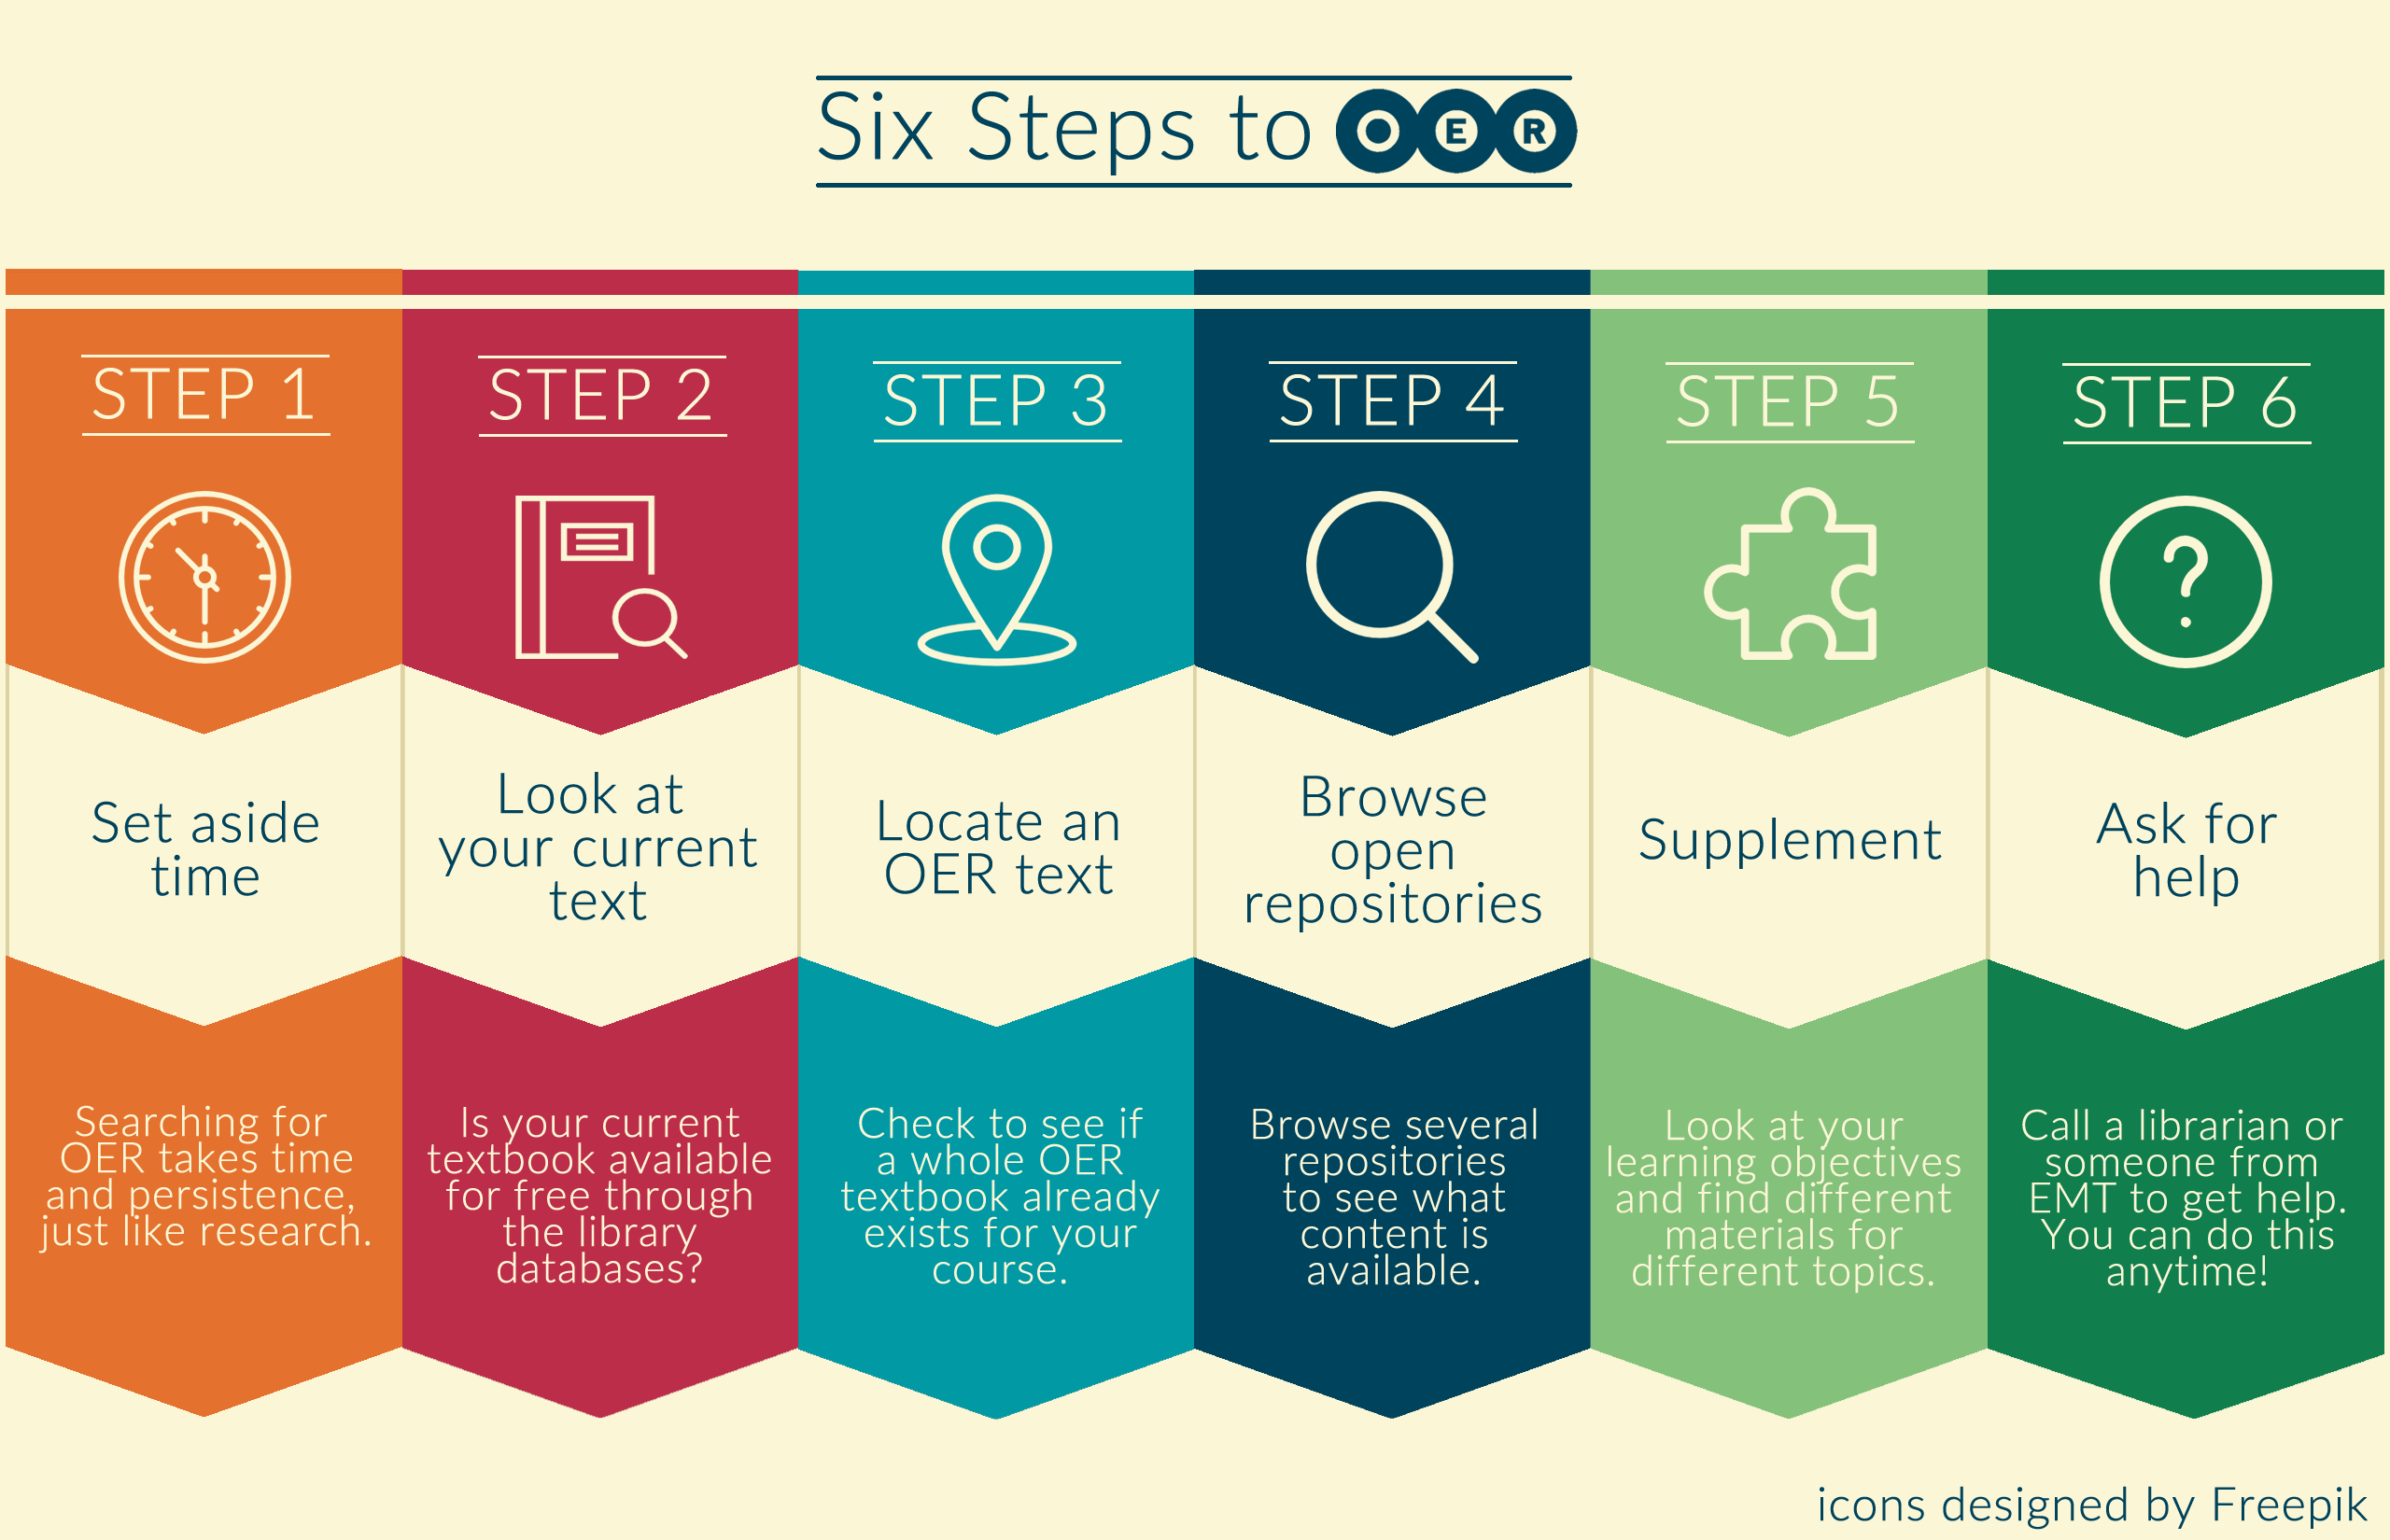 Graphic image of 6 steps to consider when using OER: step 1 - set aside time, step 2 - look at your current text, step 3 - locate an OER text, step 4 - browse open repositories, step 5 - supplement, step 6 - ask for help